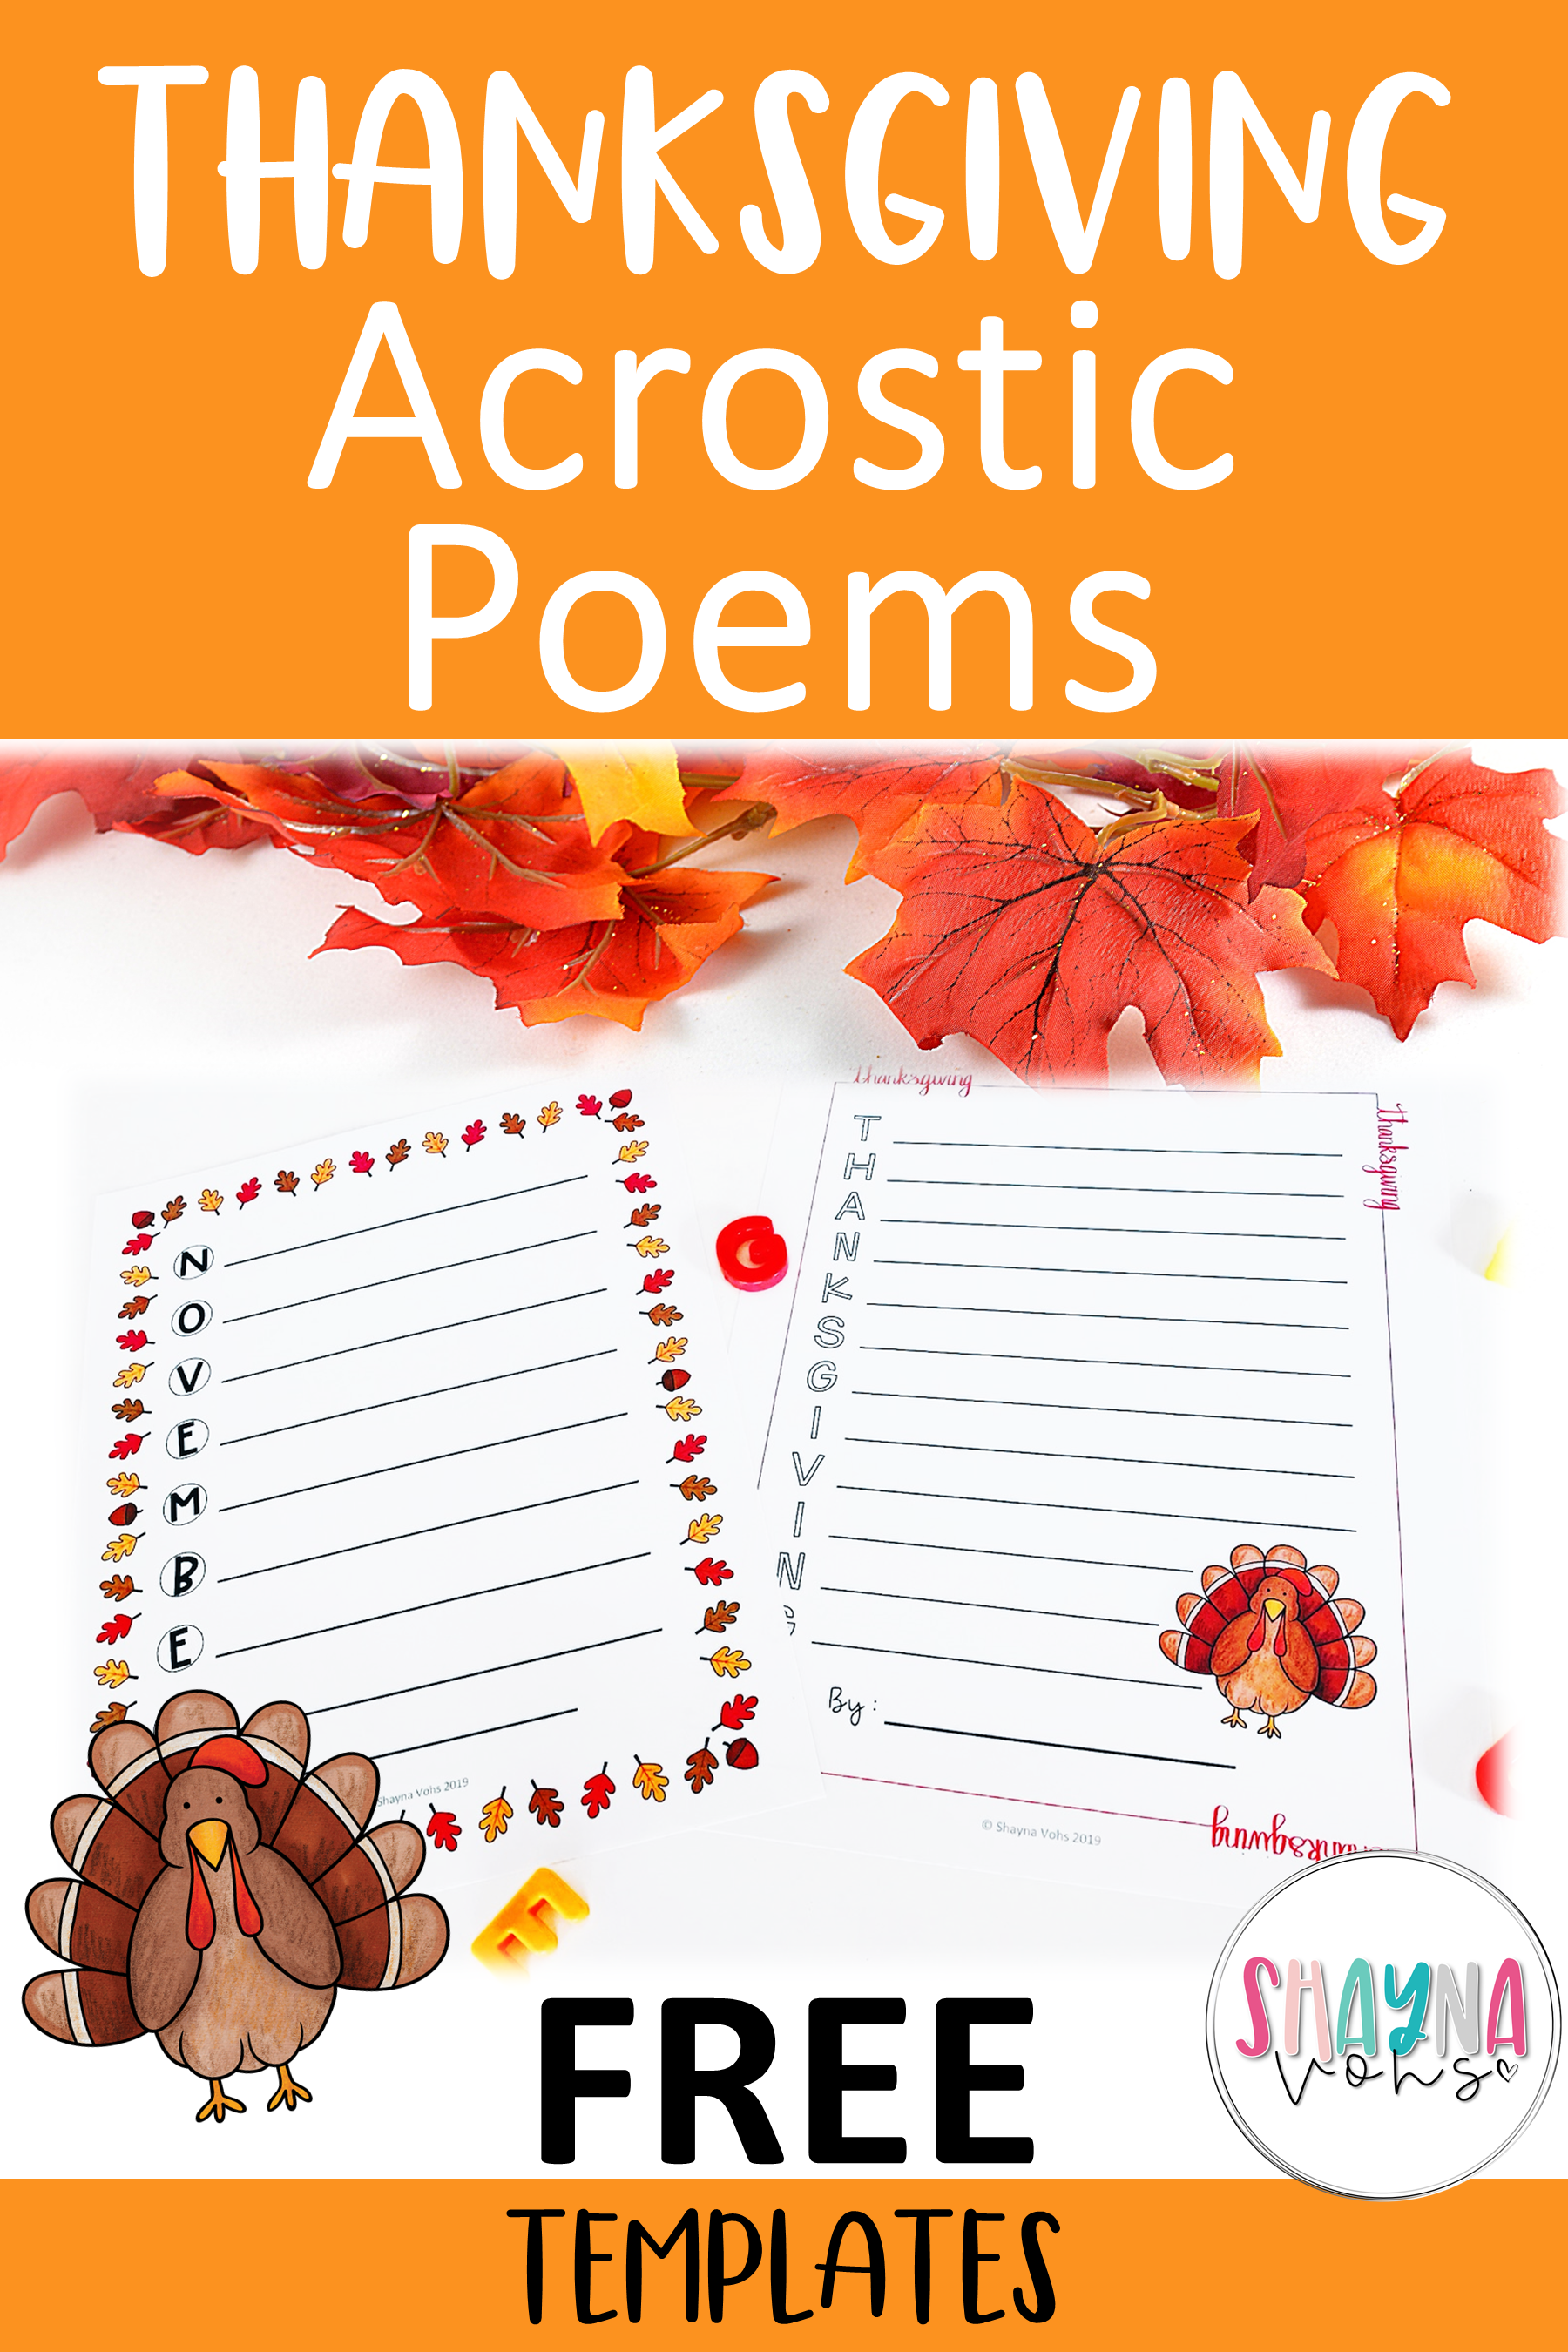 Free Thanksgiving Acrostic Poems